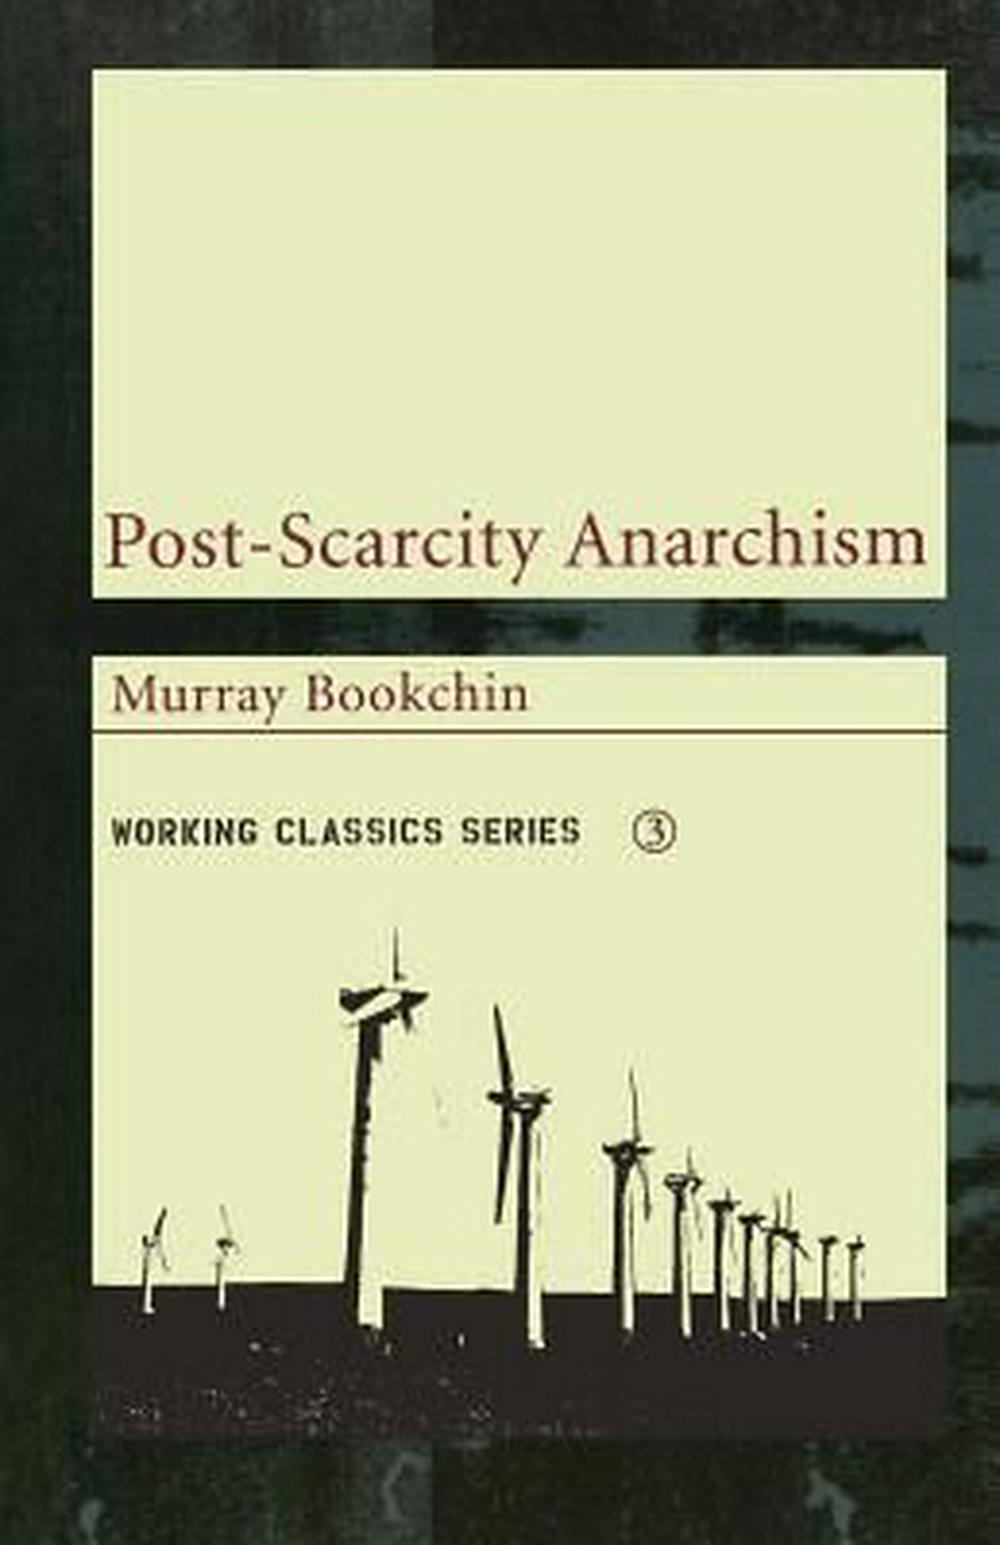 Post-scarcity Anarchism by Murray Bookchin, ISBN: 9781904859062